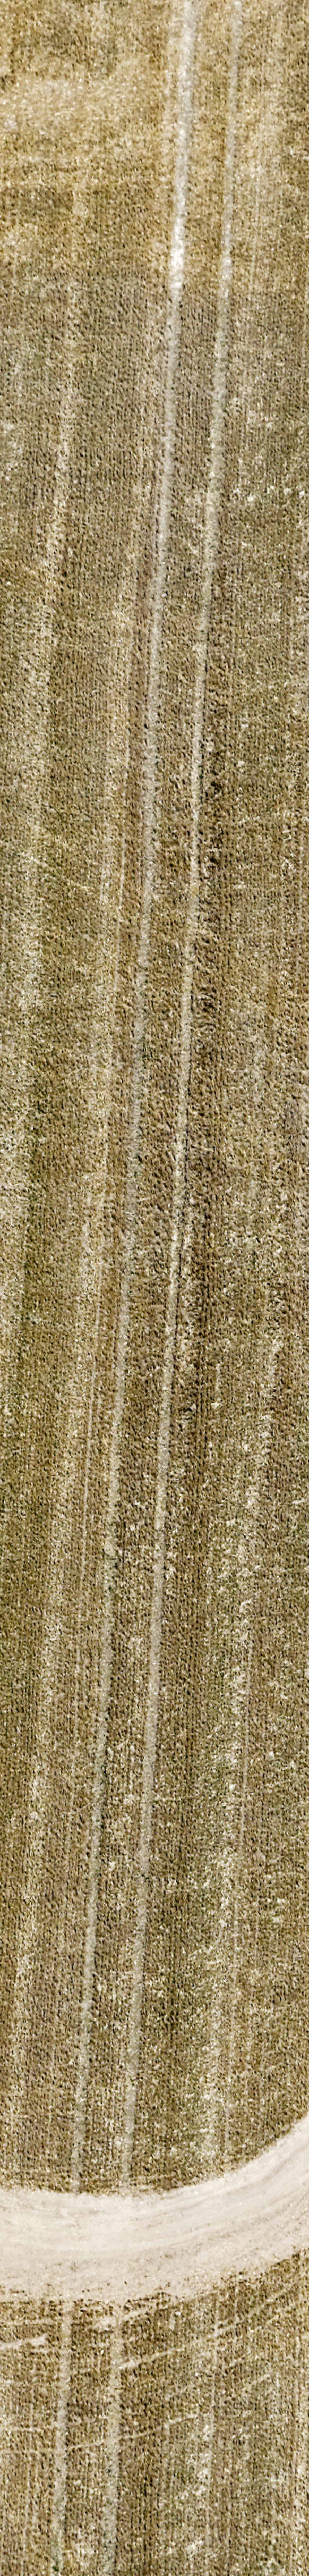 Aerial view of lanes on the stubble field - Klaus Leidorf Aerial Photography